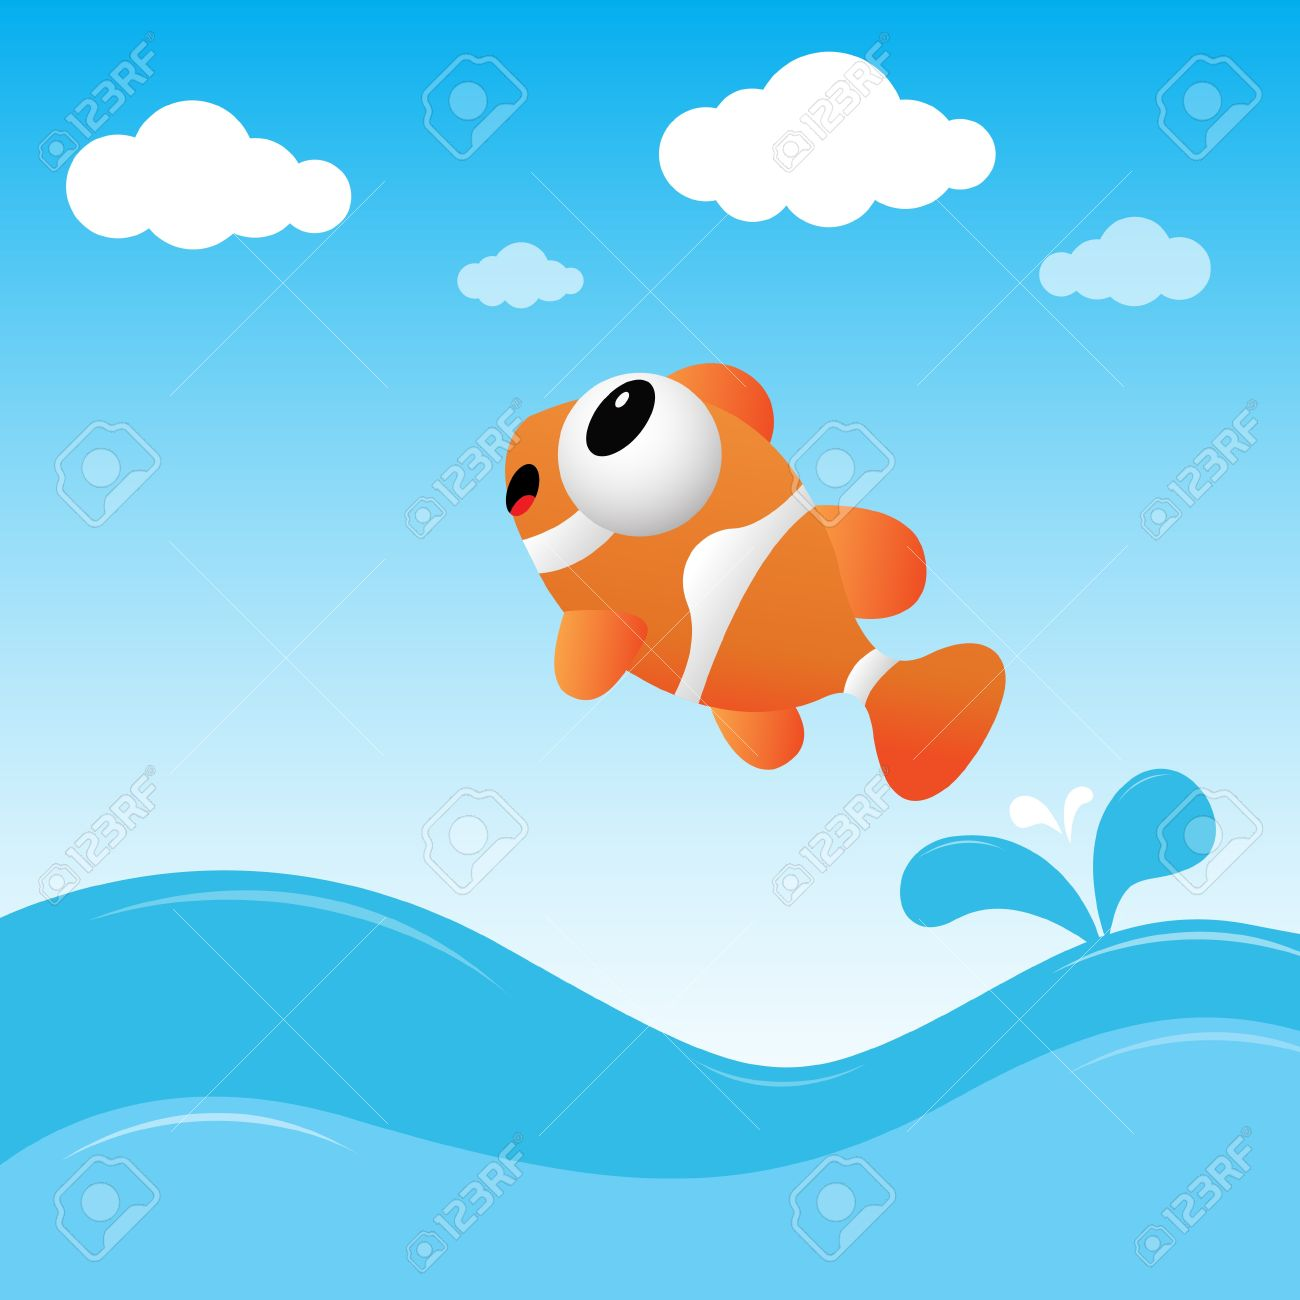 Fish jumping out of the water.